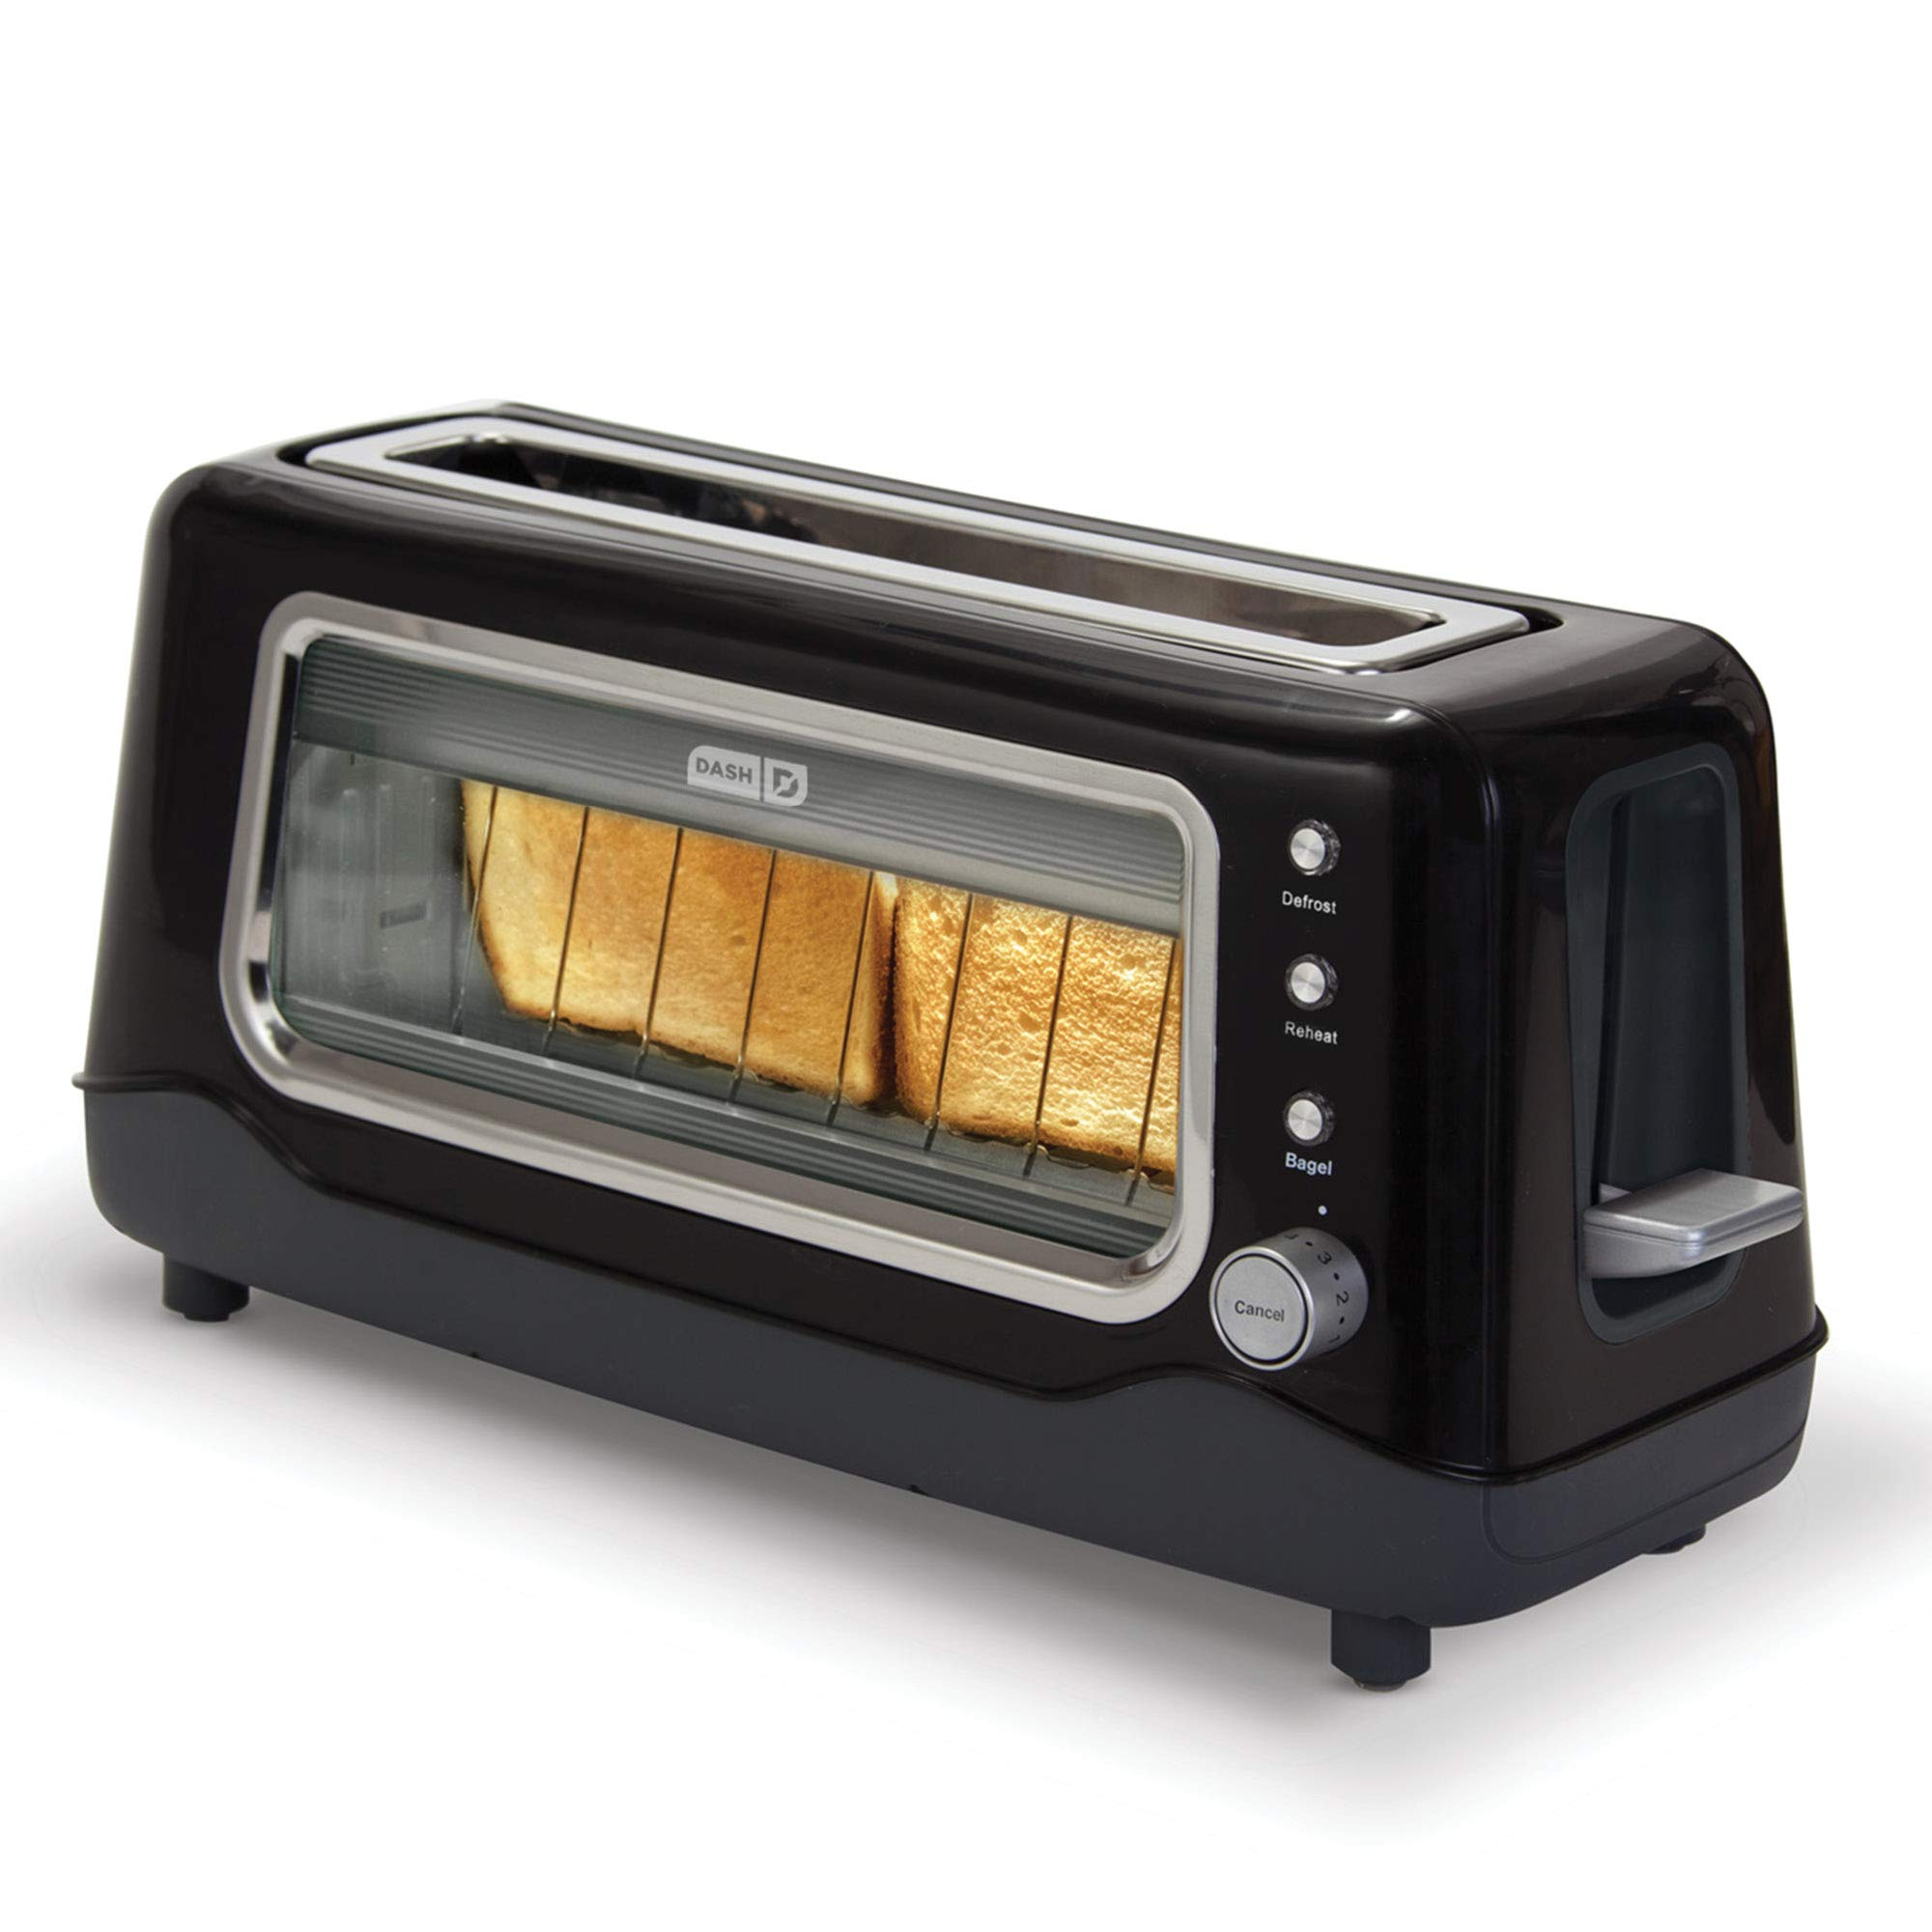 Dash Clear View Toaster: Extra Wide Slot Toaster with Stainless Steel Accents + See Through Window - Defrost, Reheat + Auto Shut Off Feature for Bagels, Specialty Breads & other Baked Goods - Black